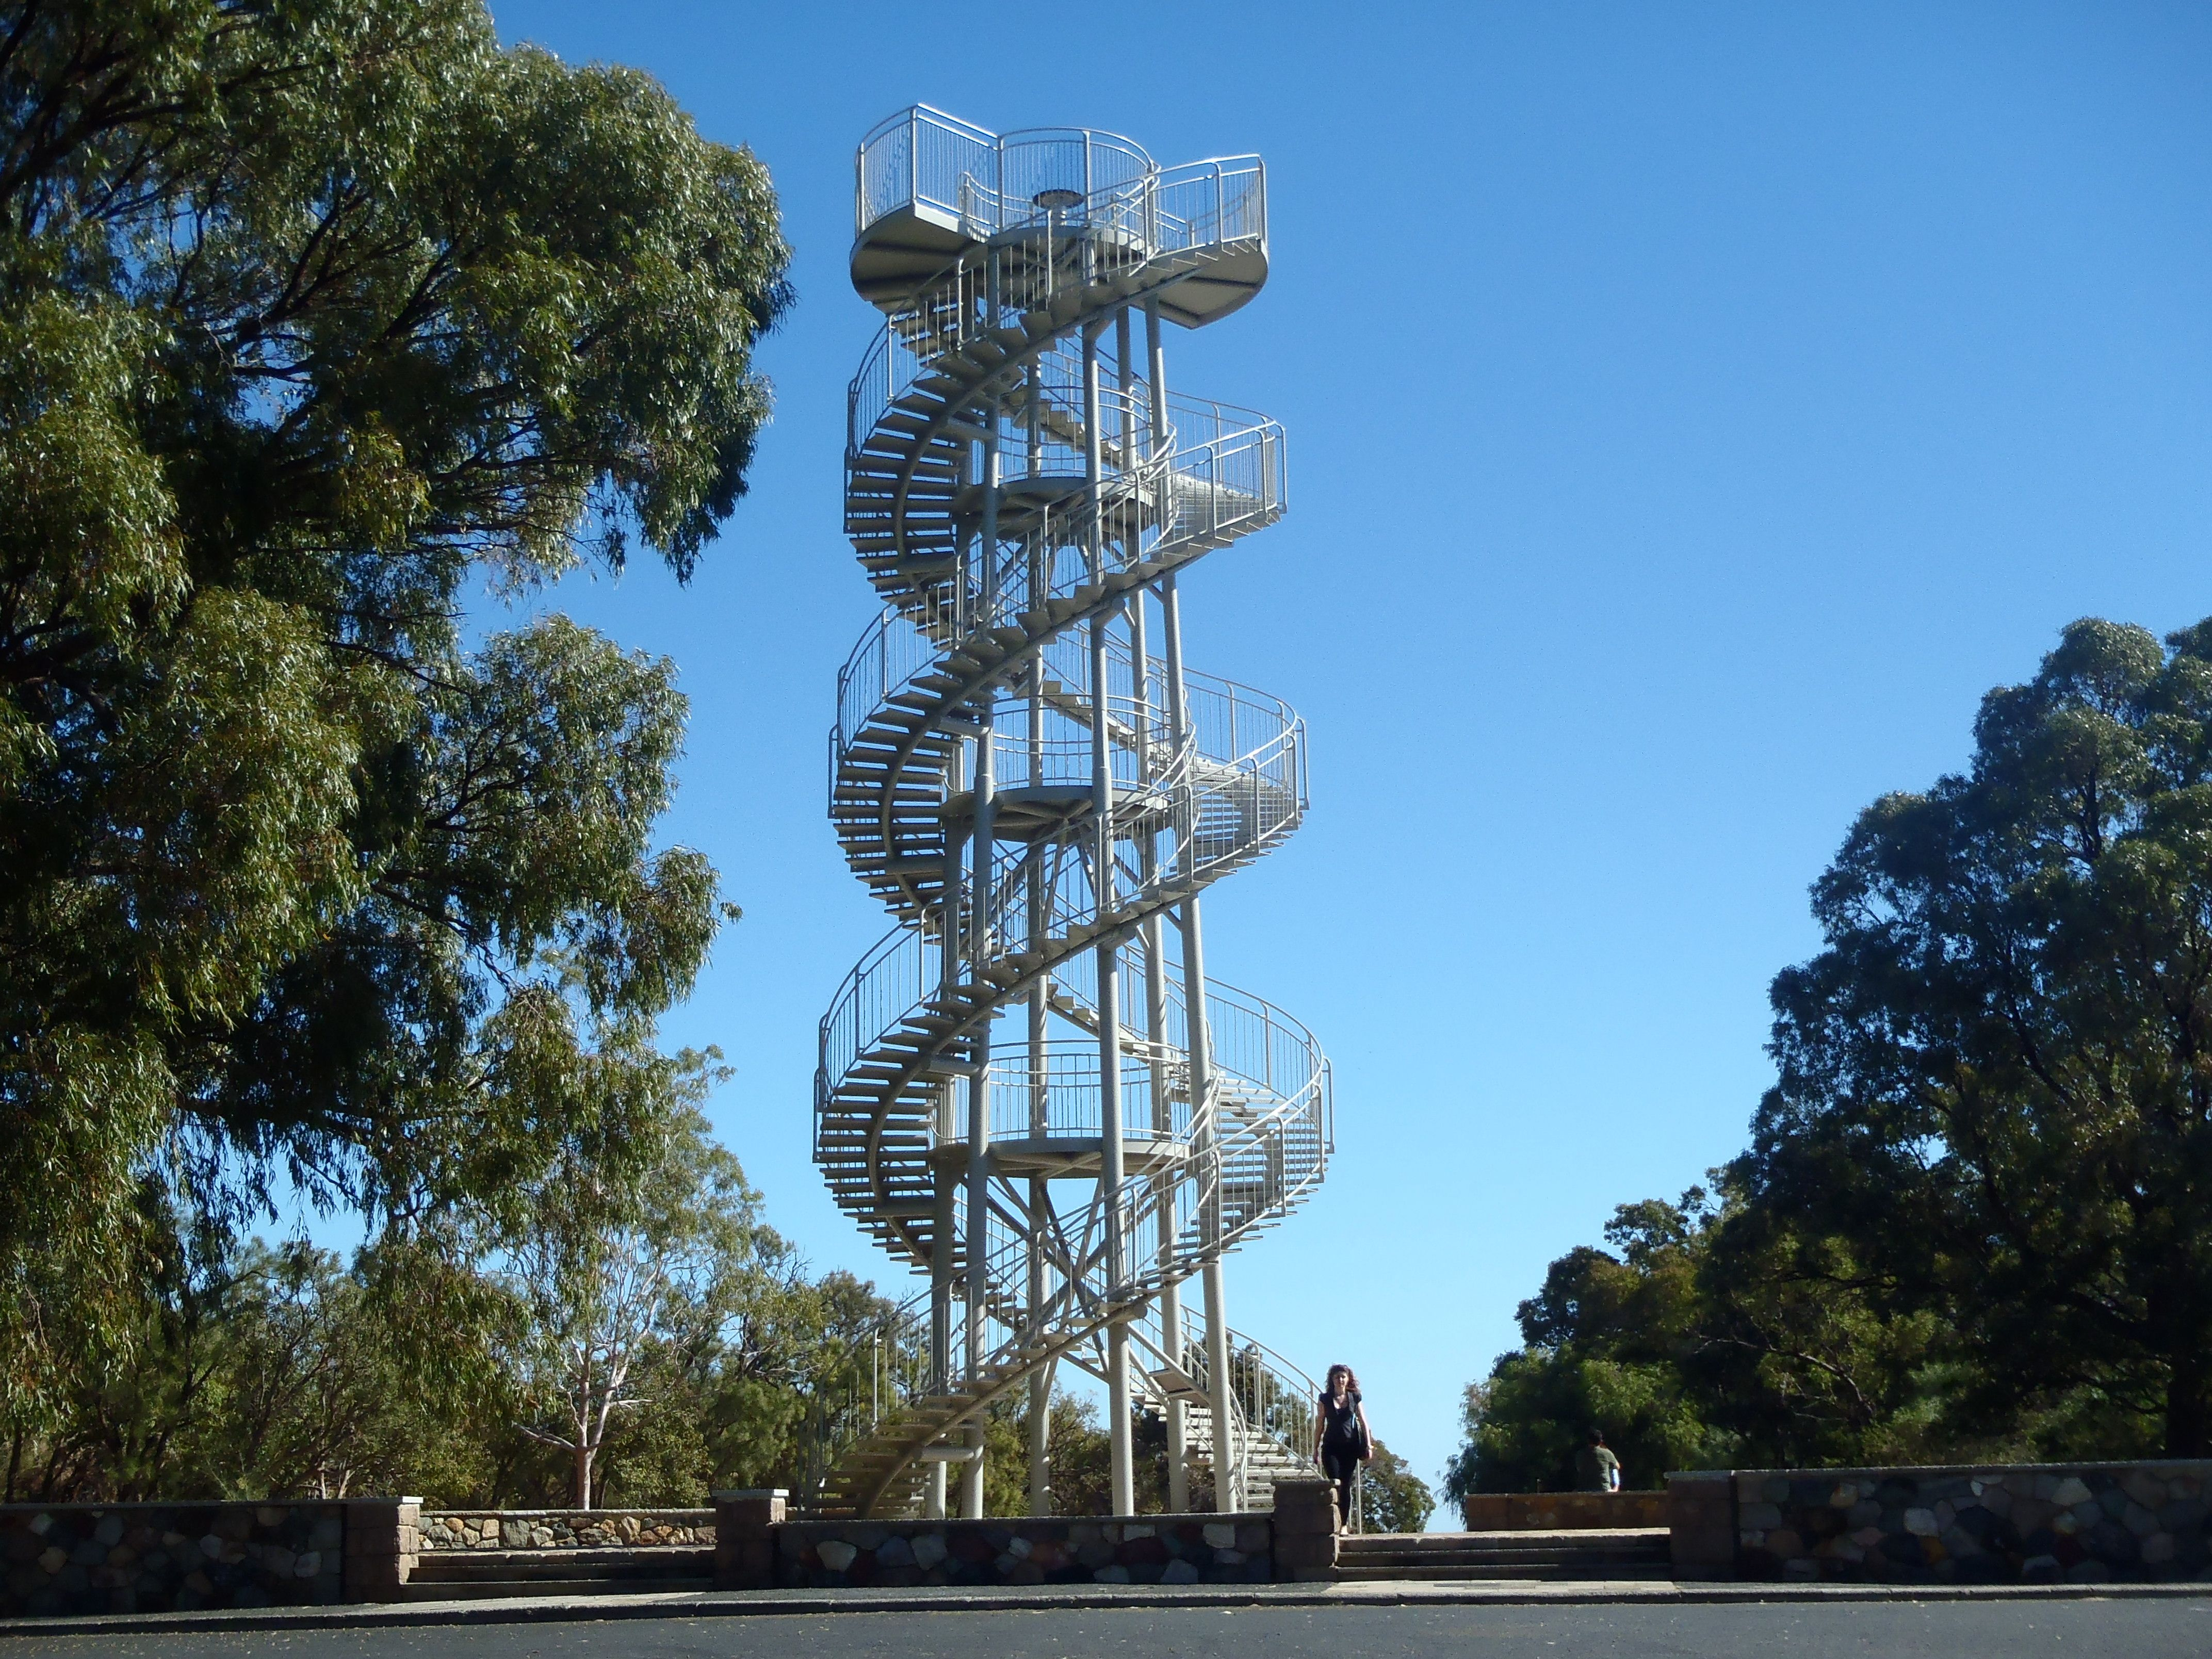 dna tower in king u0026 39 s park  perth  western australia  unusual structure with an overrated view